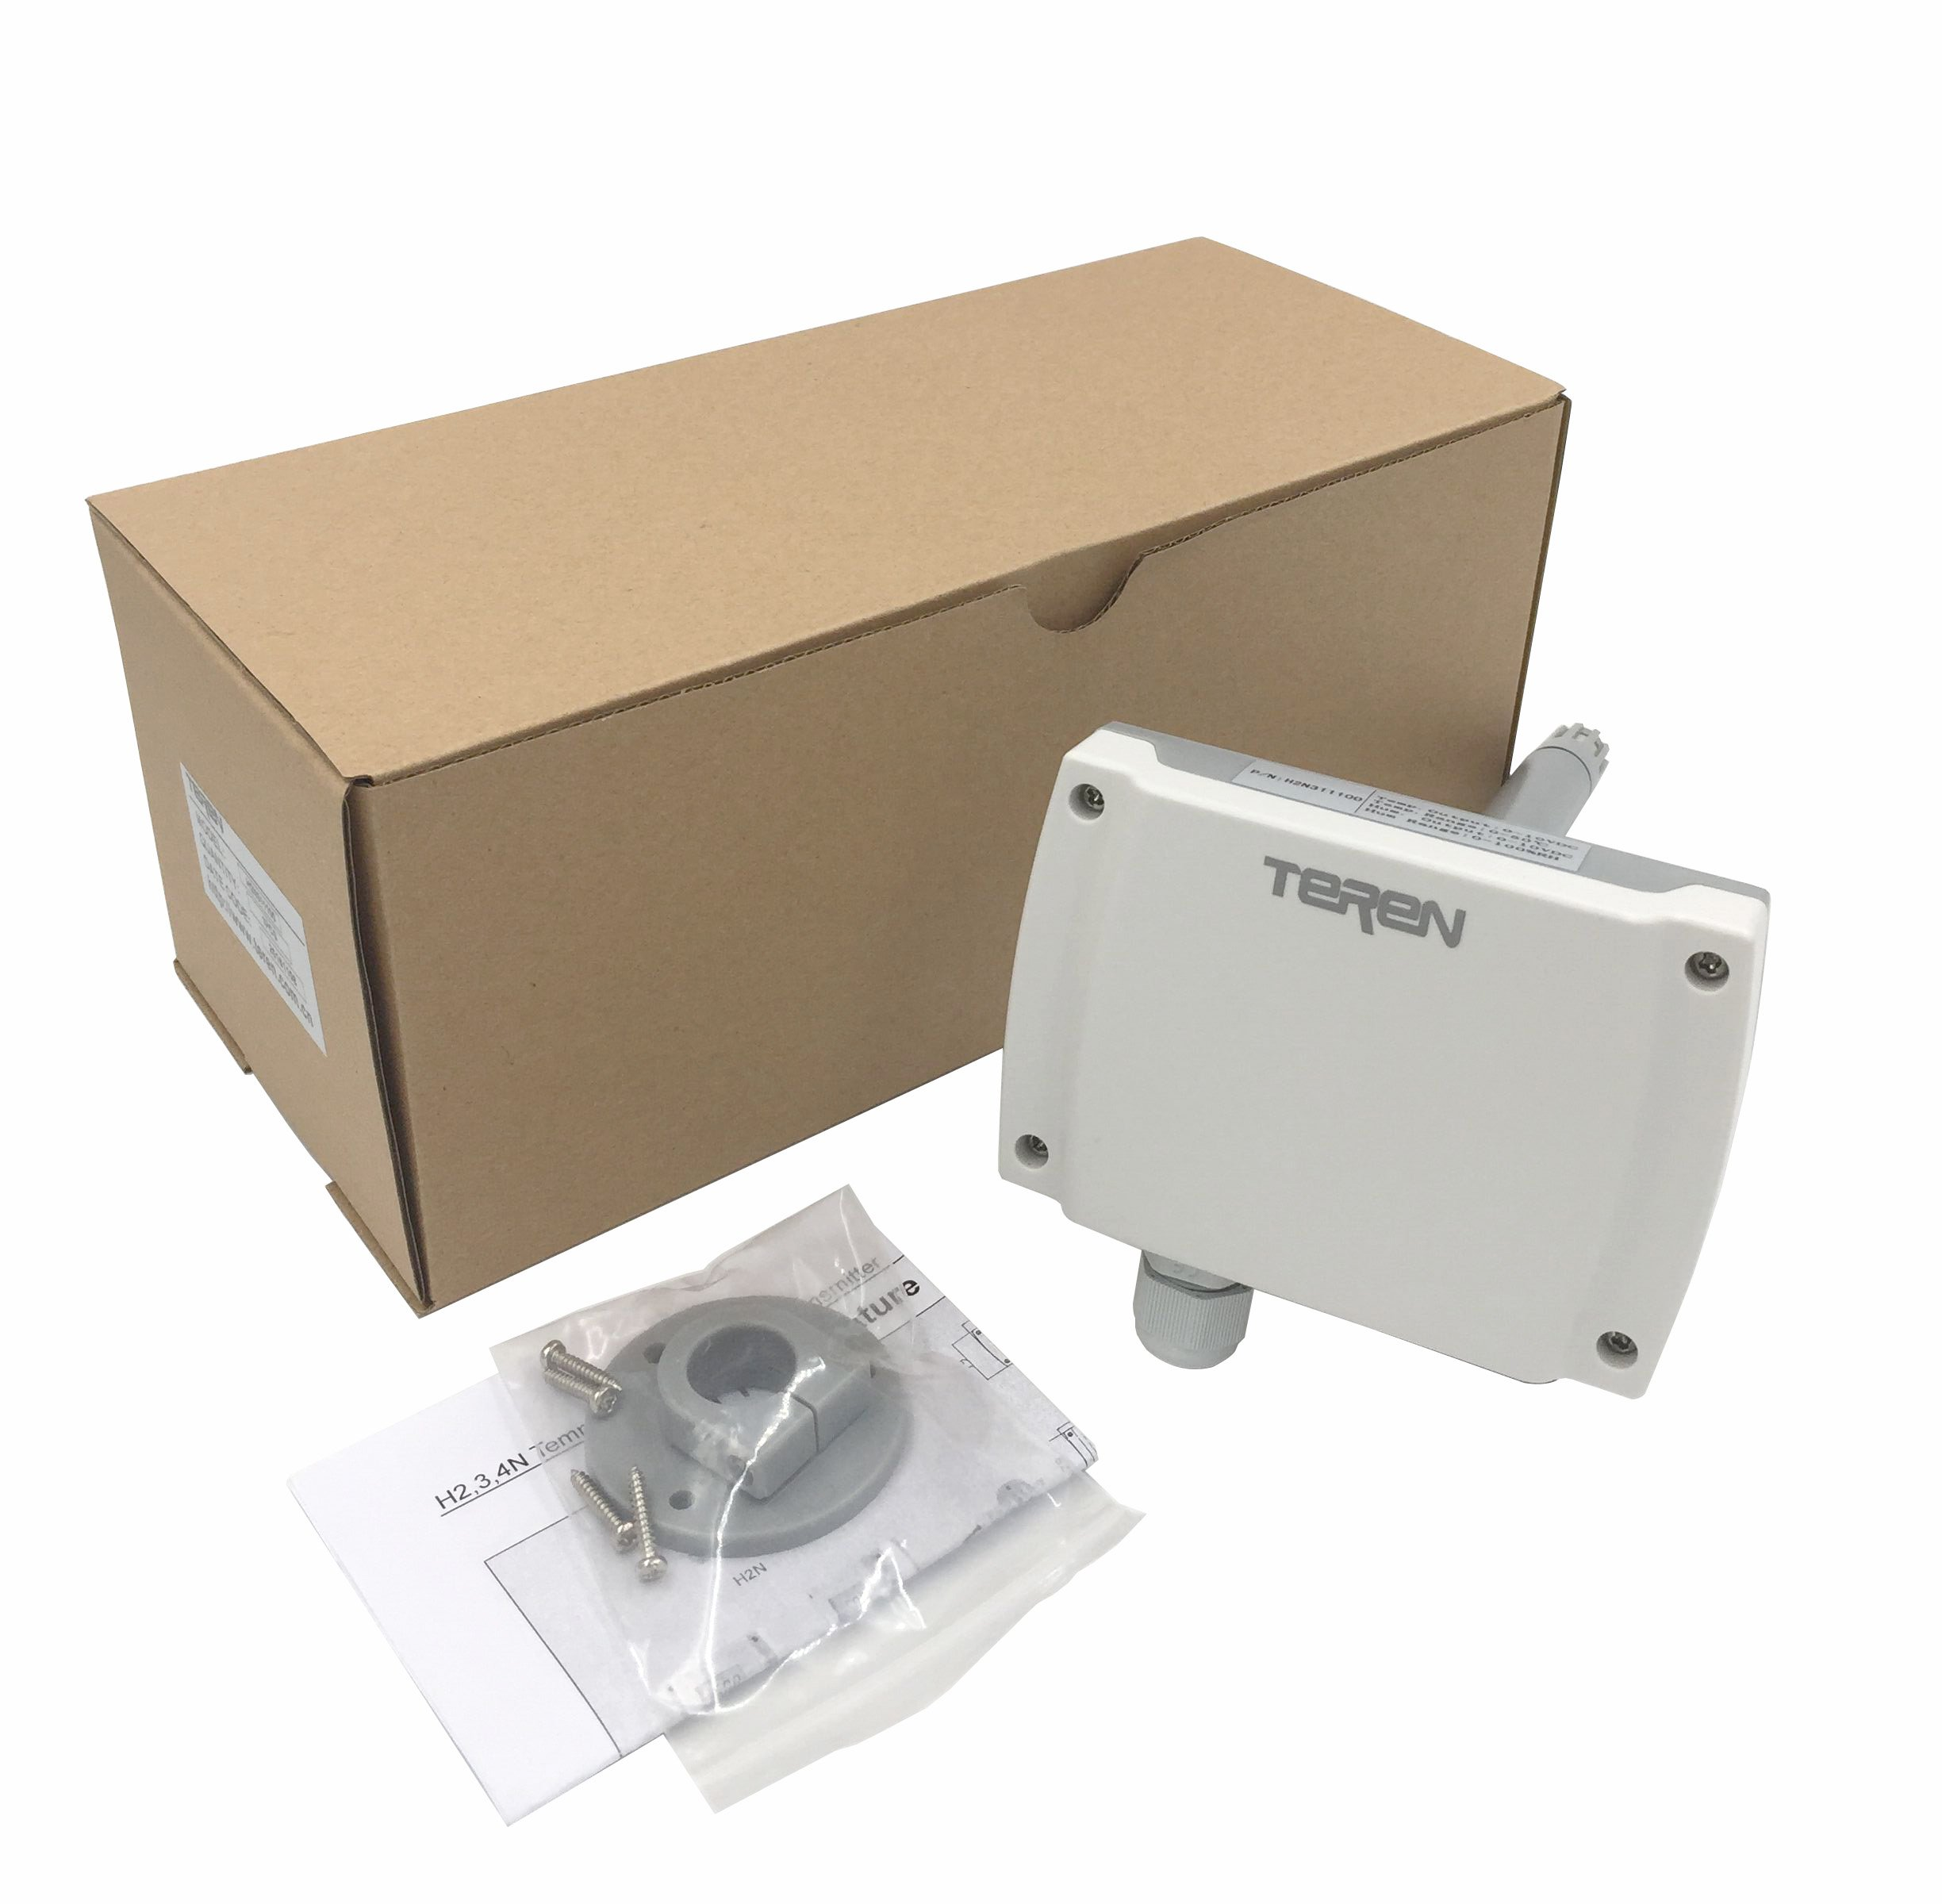 TEREN Duct Mount Temperature & Humidity Transmitter, H2N322100, 3% Accuracy, 4-20mA Output by TEREN (Image #3)